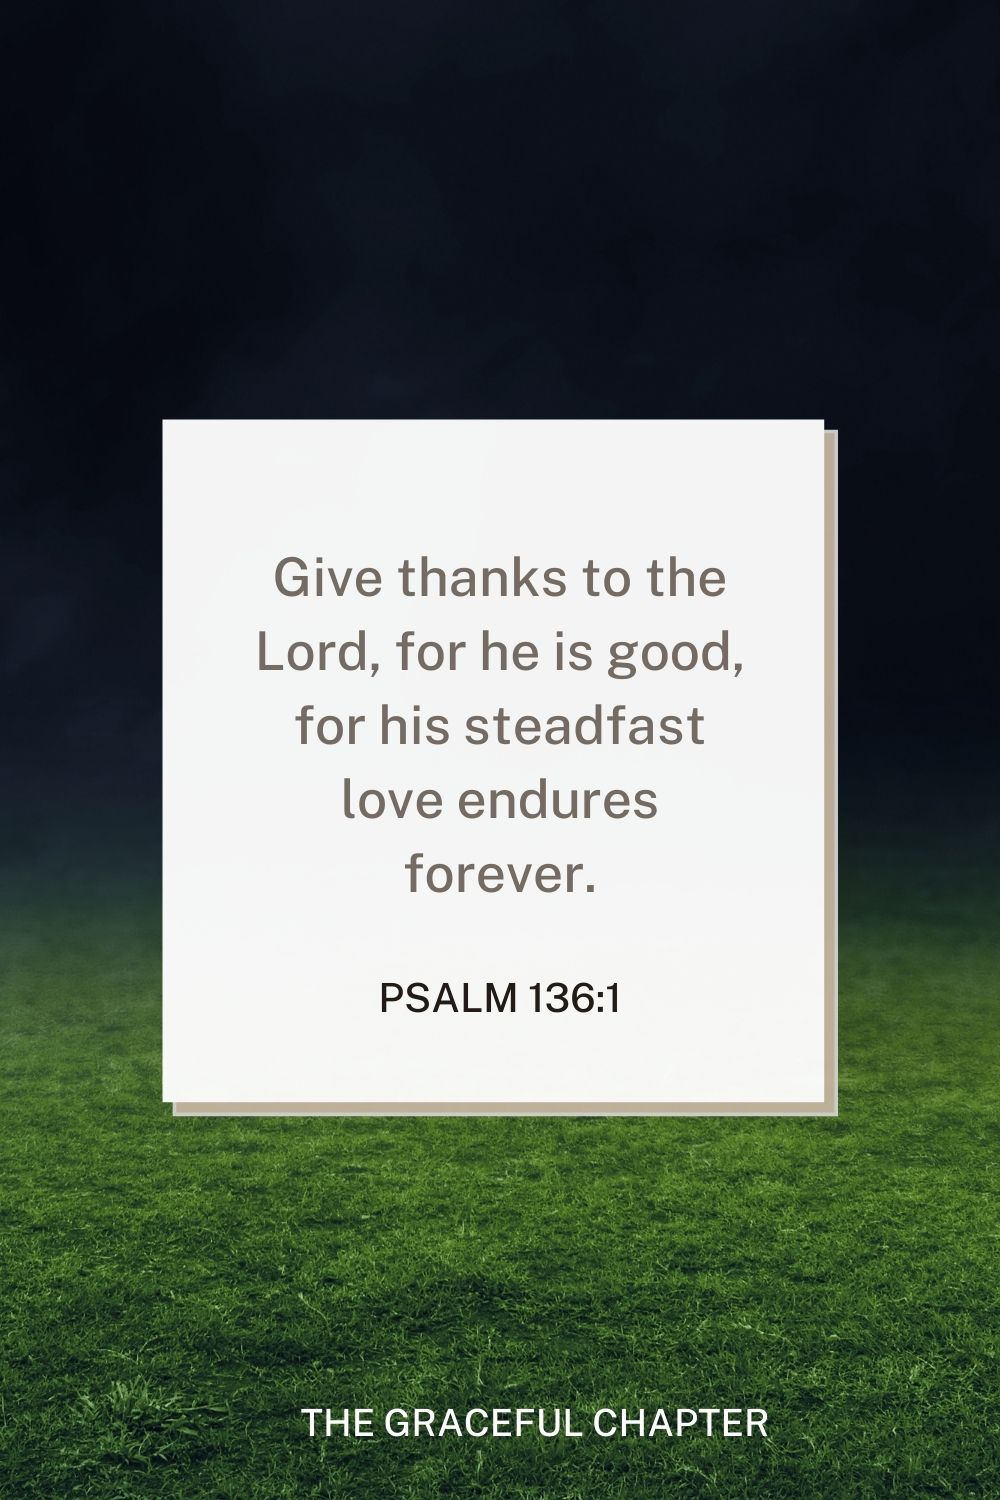 Give thanks to the Lord, for he is good, for his steadfast love endures forever. Psalm 136:1